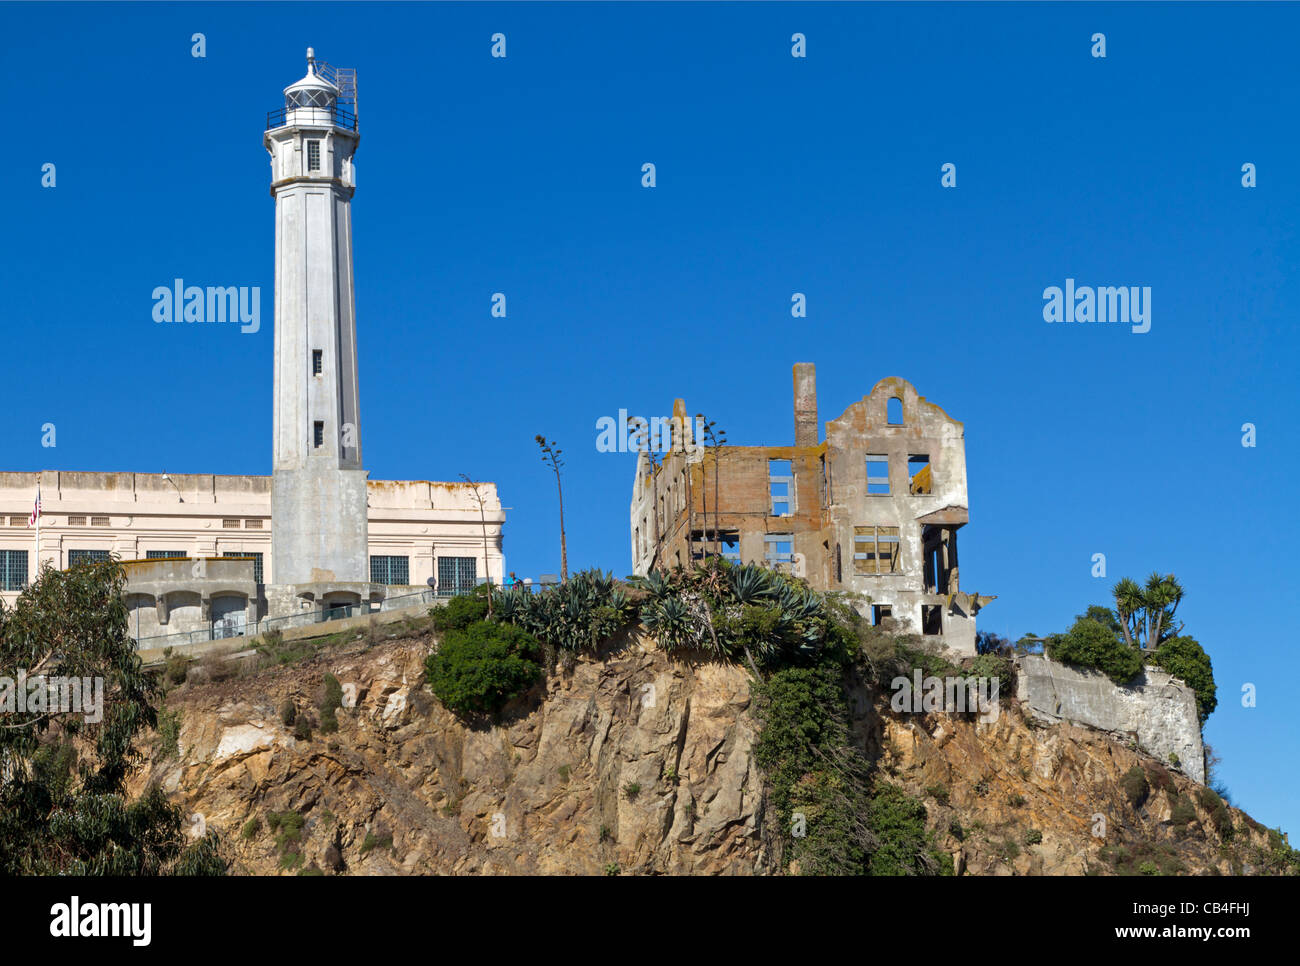 Alcatraz California, USA - Stock Image